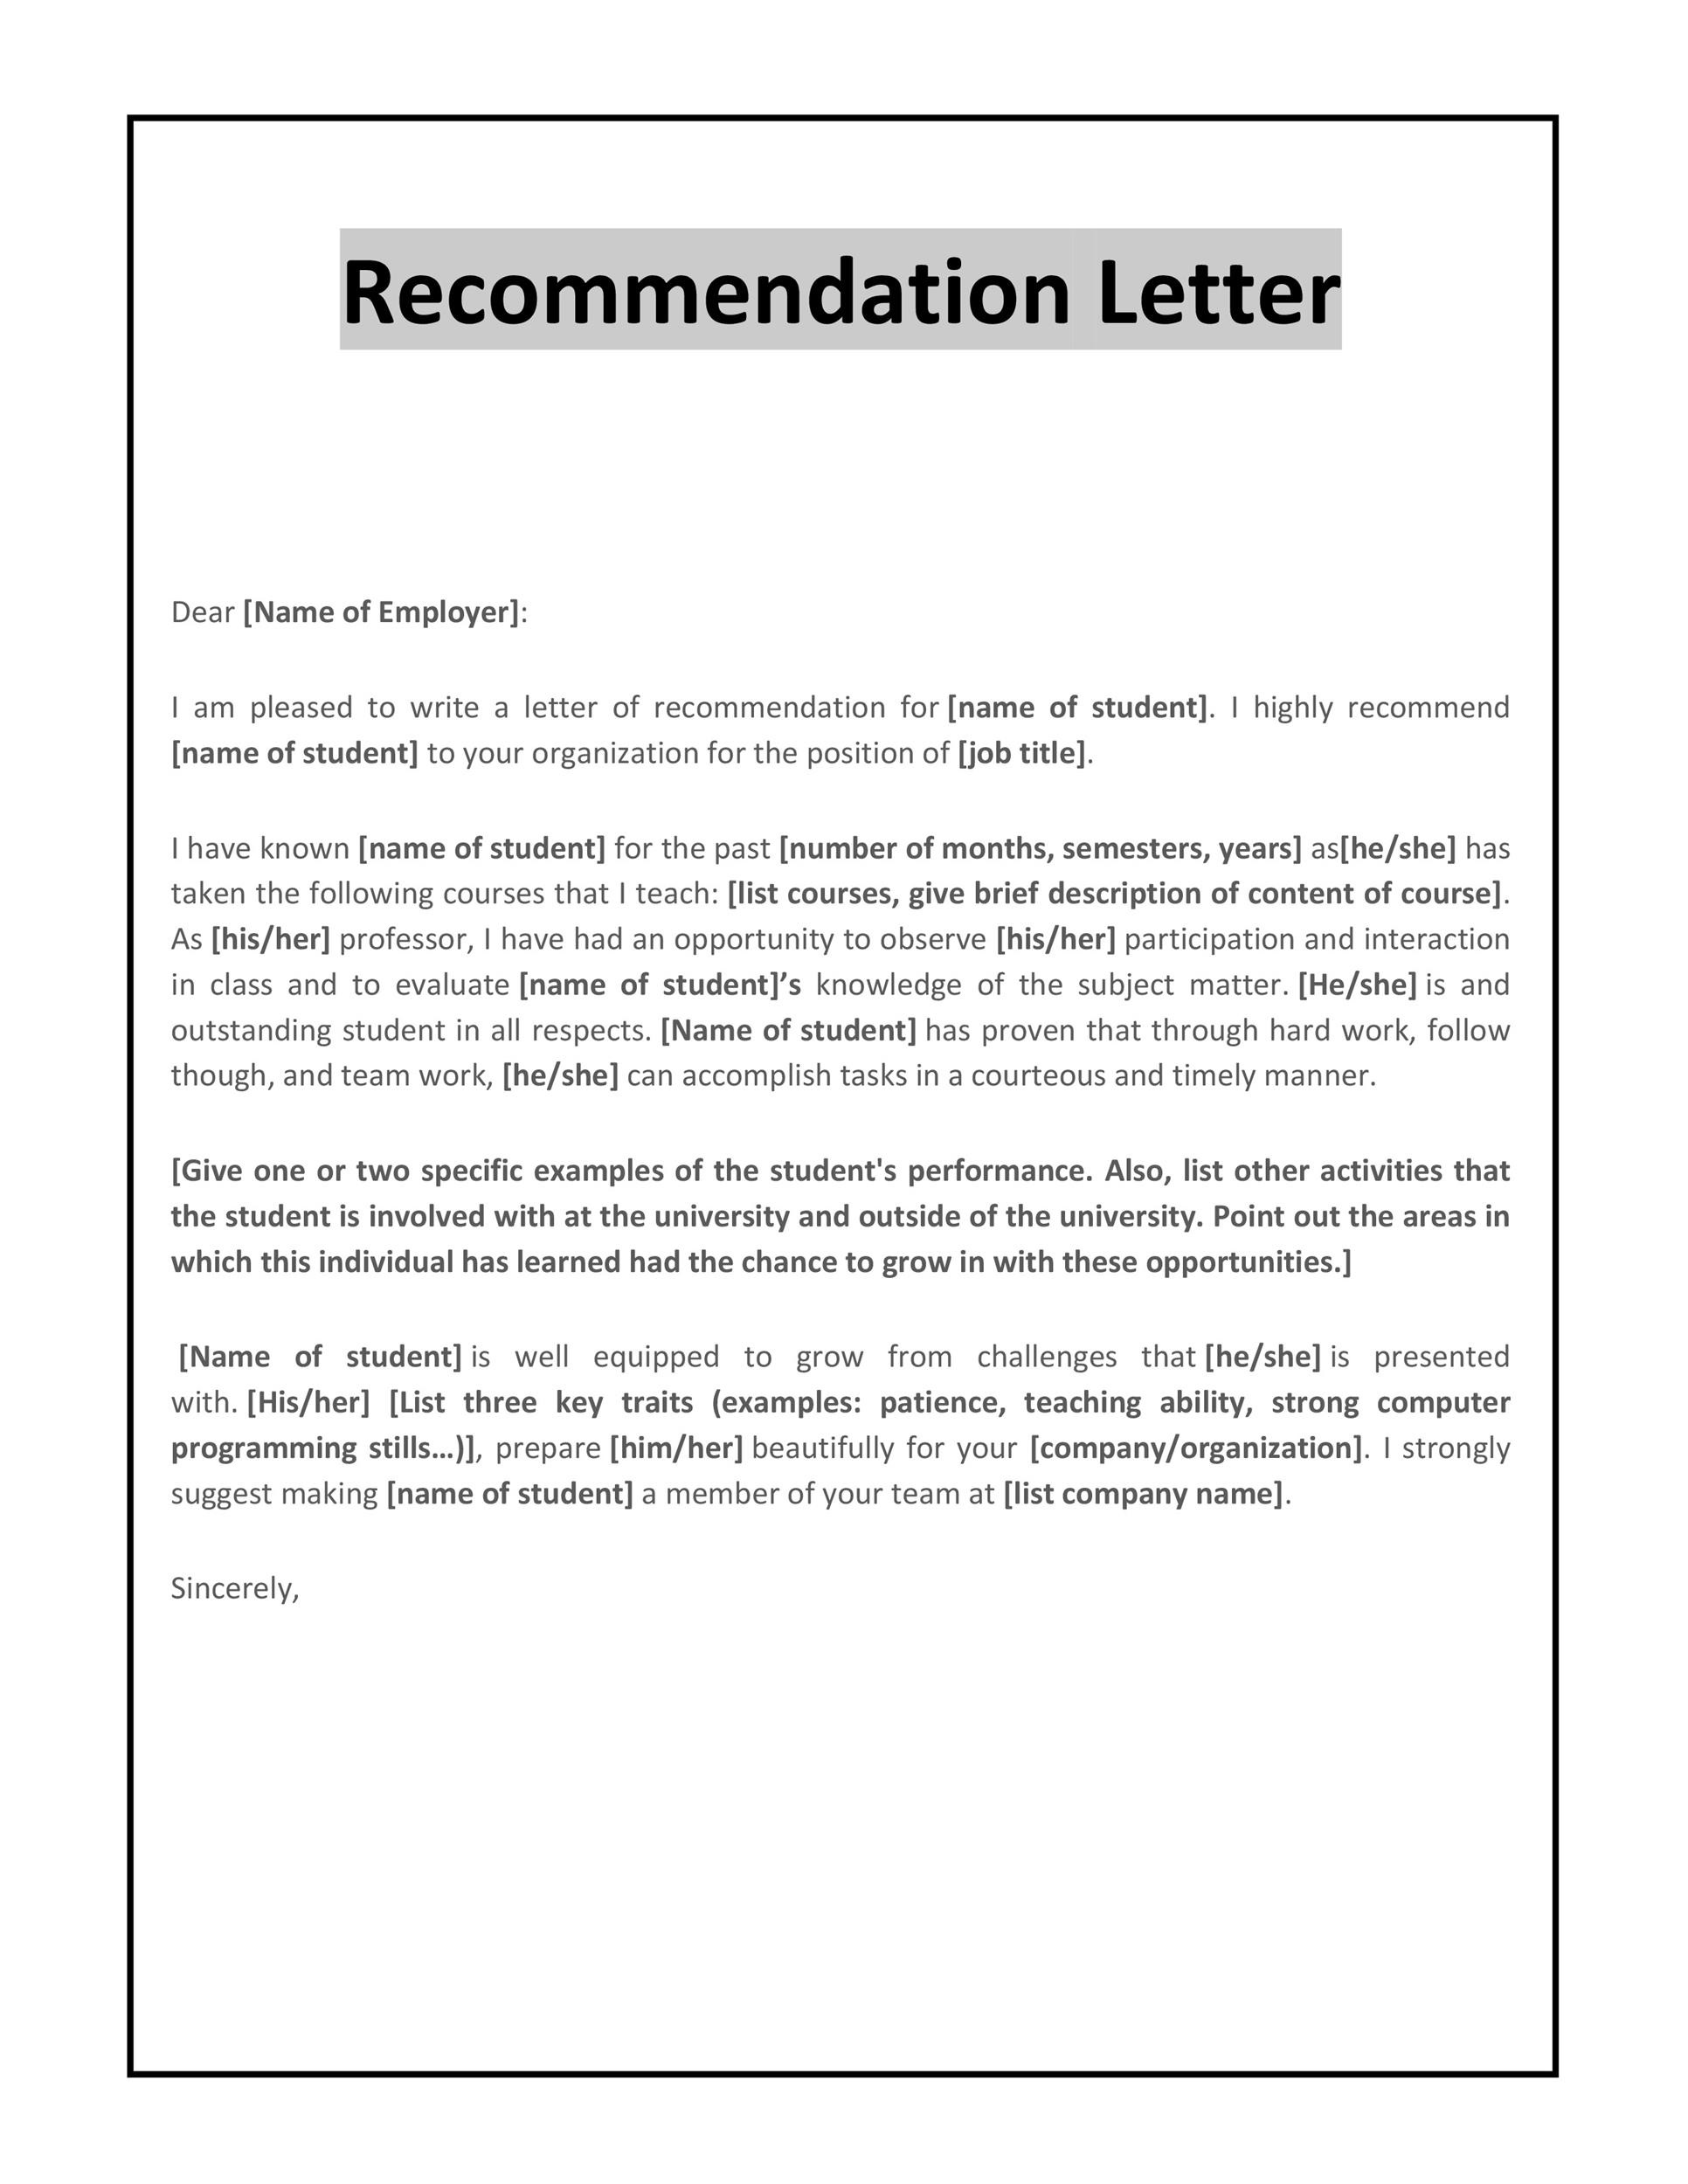 Employer Letter Of Recommendation Template from www.addictionary.org